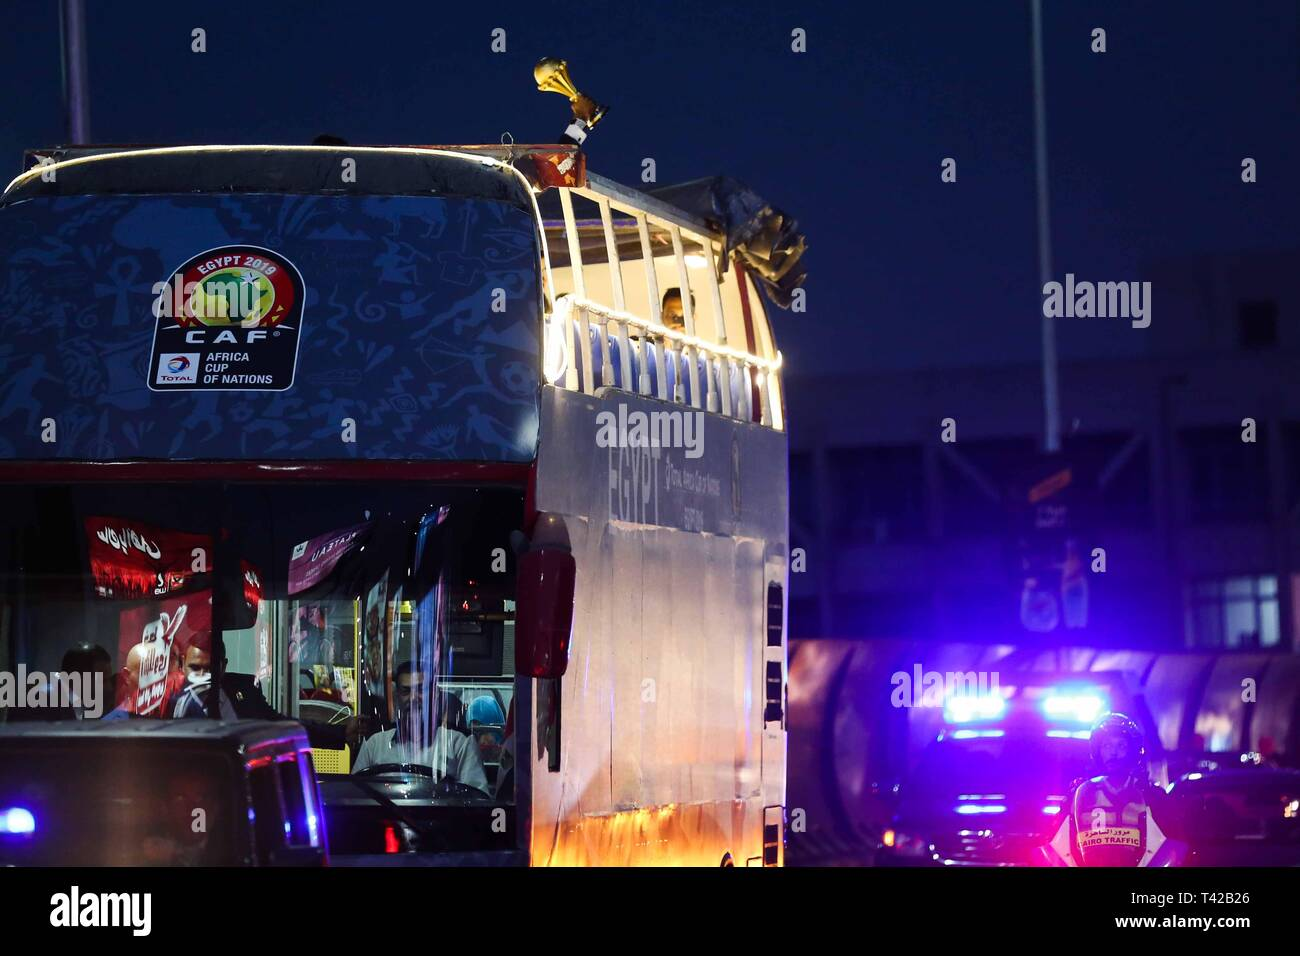 Cairo, Egypt. 12th Apr, 2019. Retired Cameroonian footballer Rigobert Song holds the Africa Cup of Nations (AFCON) trophy on top of an open top bus during a tour in the streets of Cairo ahead of the 2019 Africa Cup of Nations draw, which to take place at the Pyramids of Giza. Credit: Hassan Mohamed/dpa/Alamy Live News - Stock Image